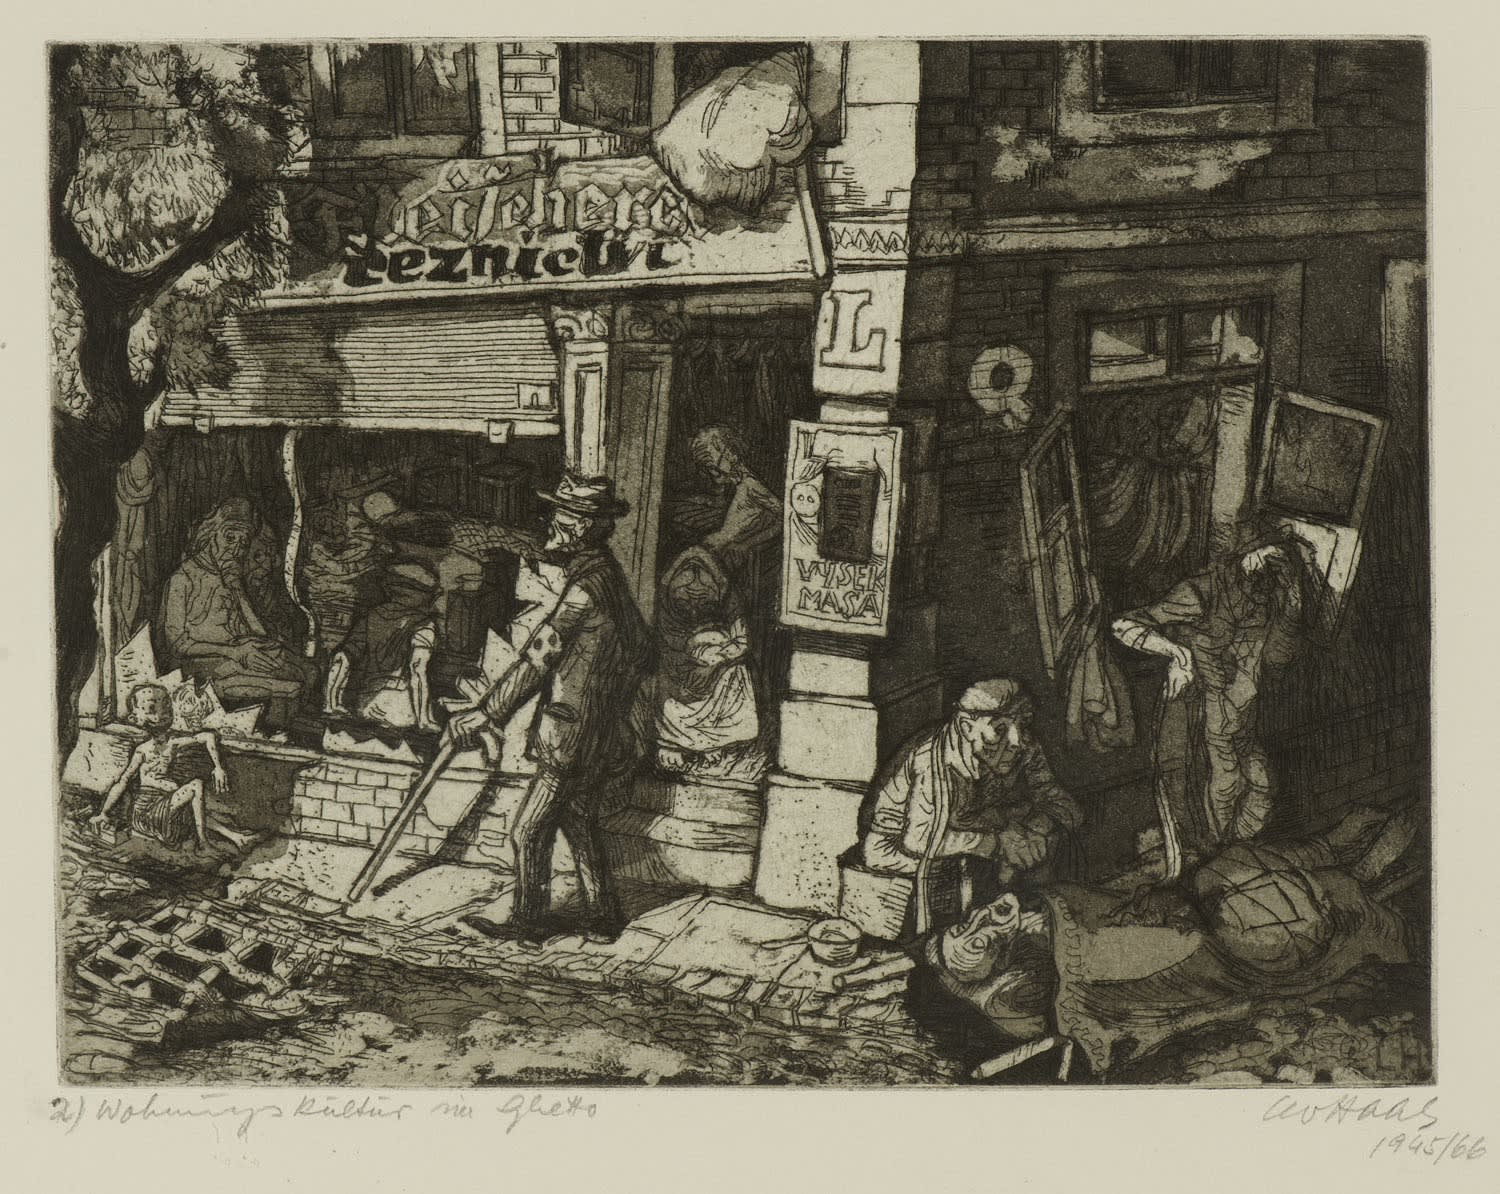 Leo Haas (1901-1983) Ghetto (Terezín-Theresienstadt series) 1945-66 Drypoint aquatint and etching on paper 21.5 x 28.4 cm Ben Uri Collection © Leo Haas estate To see and discover more about this artist click here